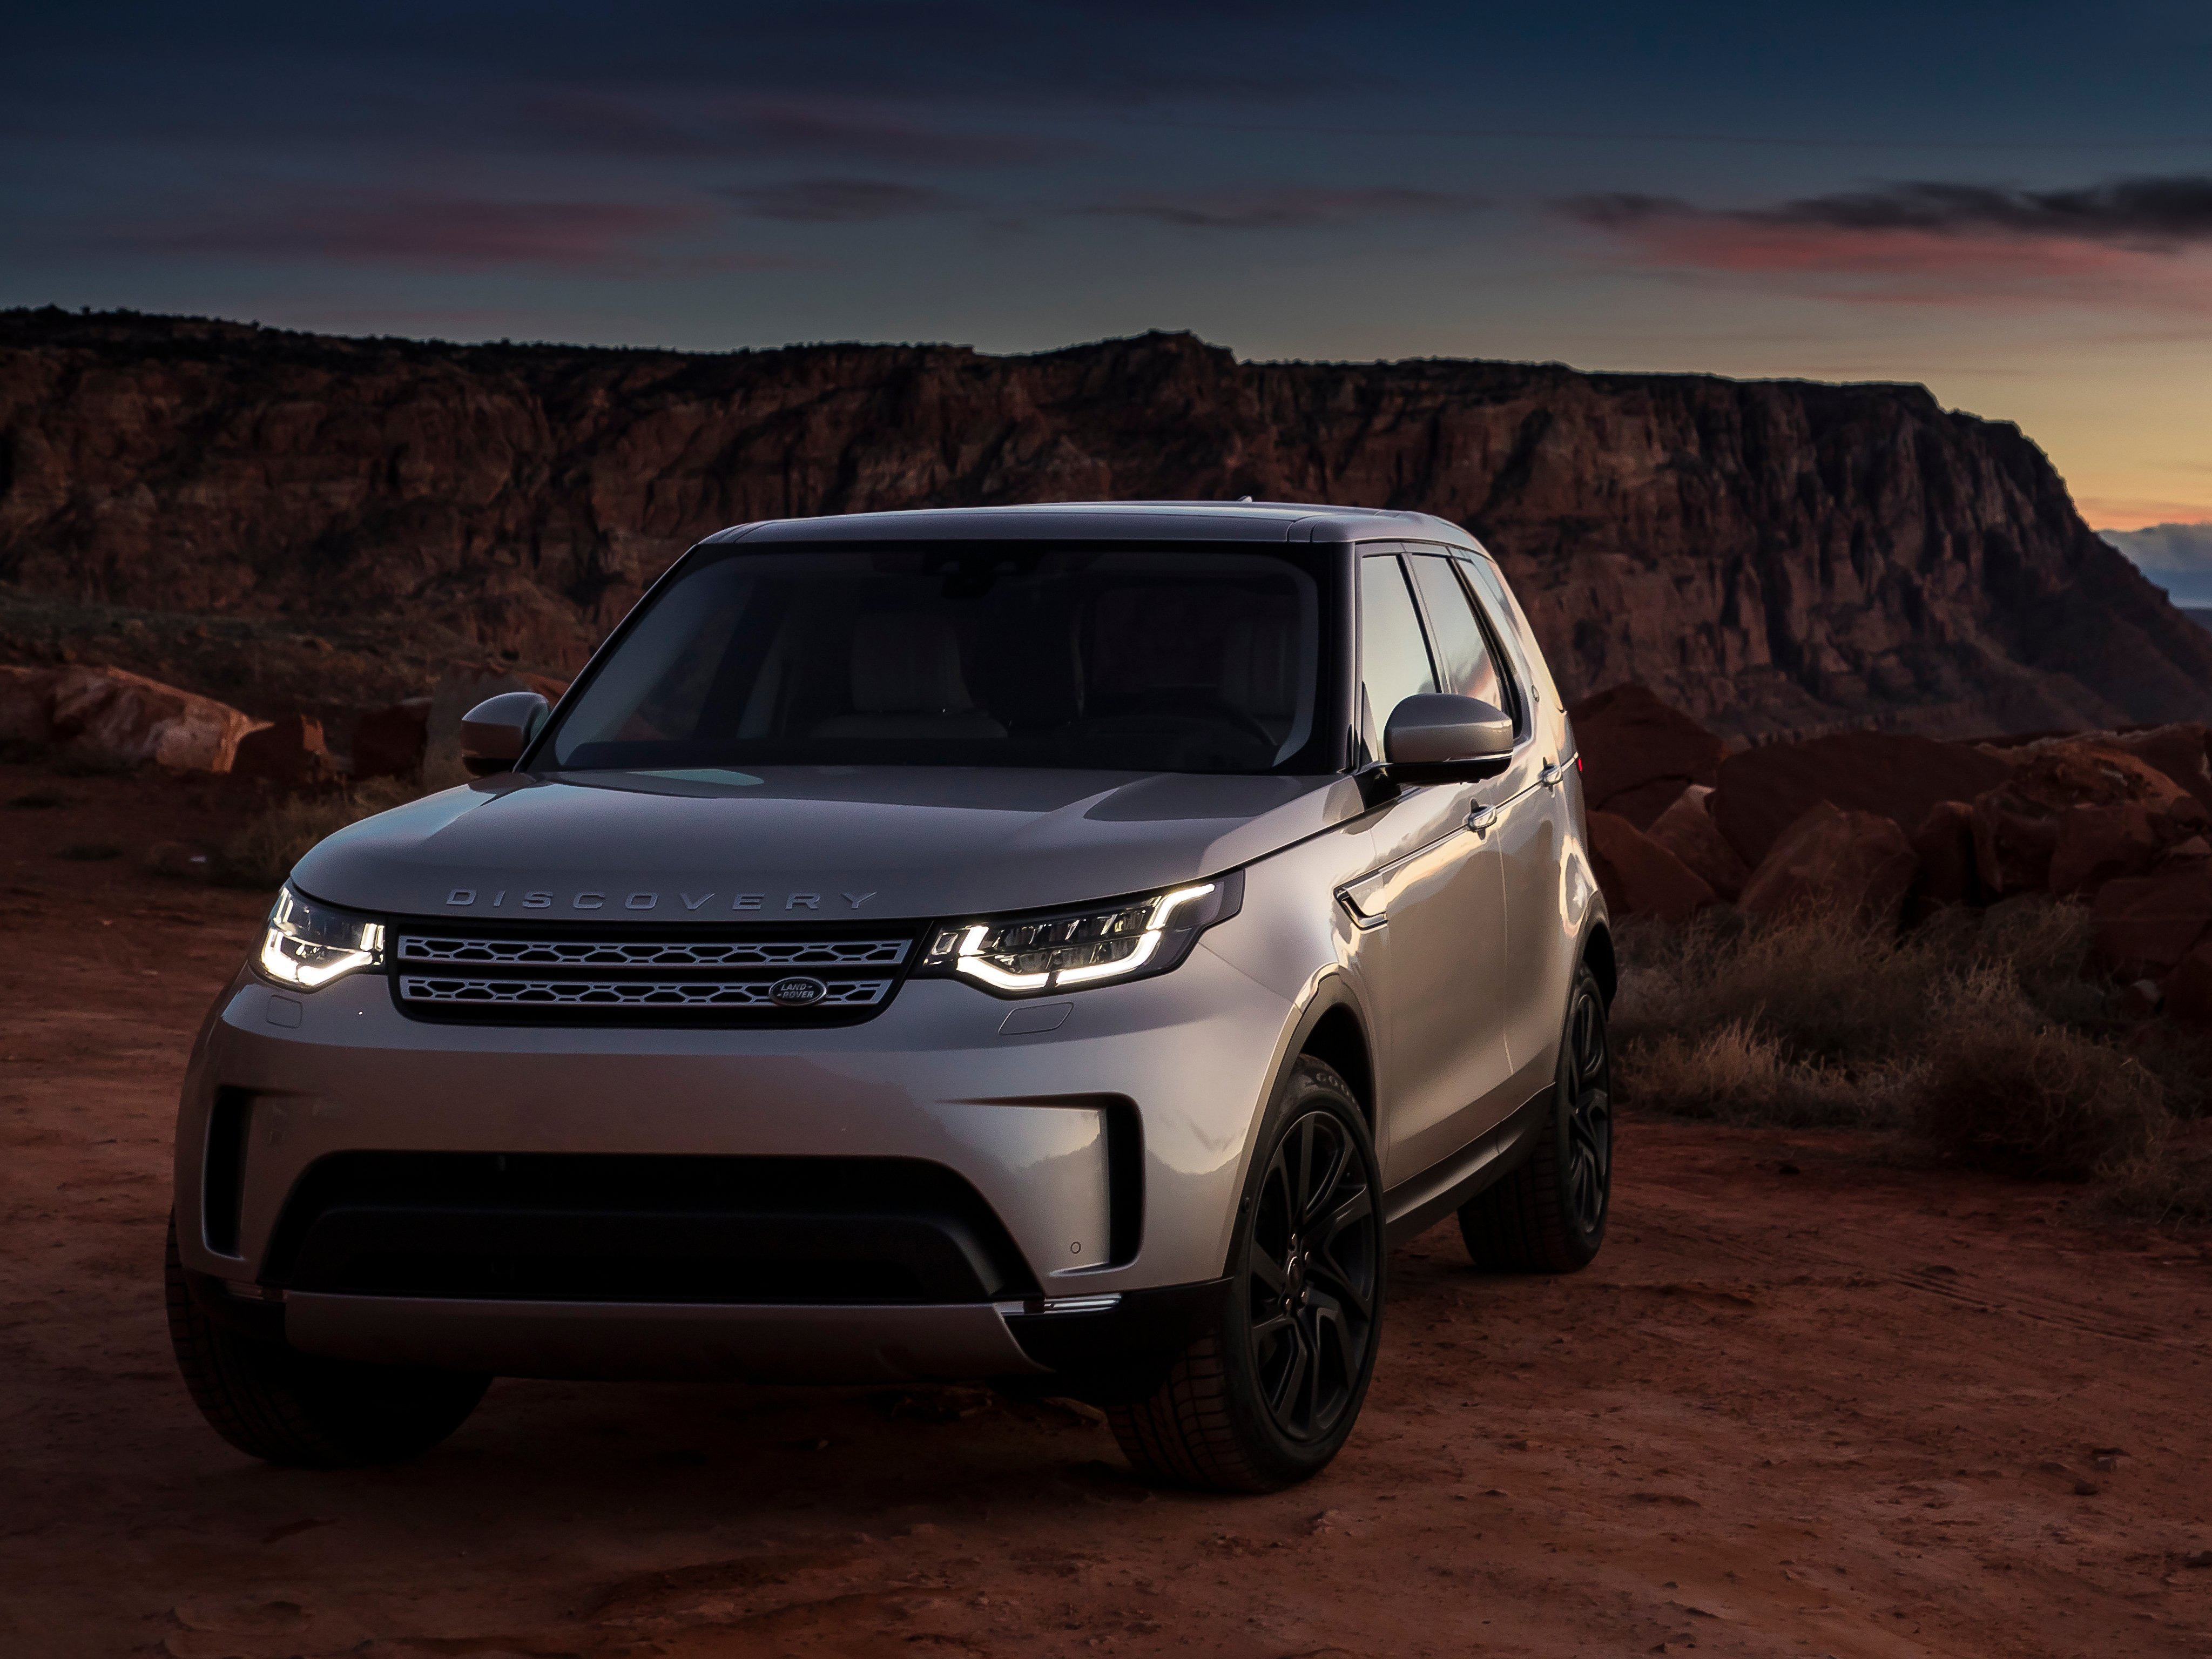 http://hdqwalls.com/wallpapers/2017-land-rover-discovery-sd4-4k.jpg